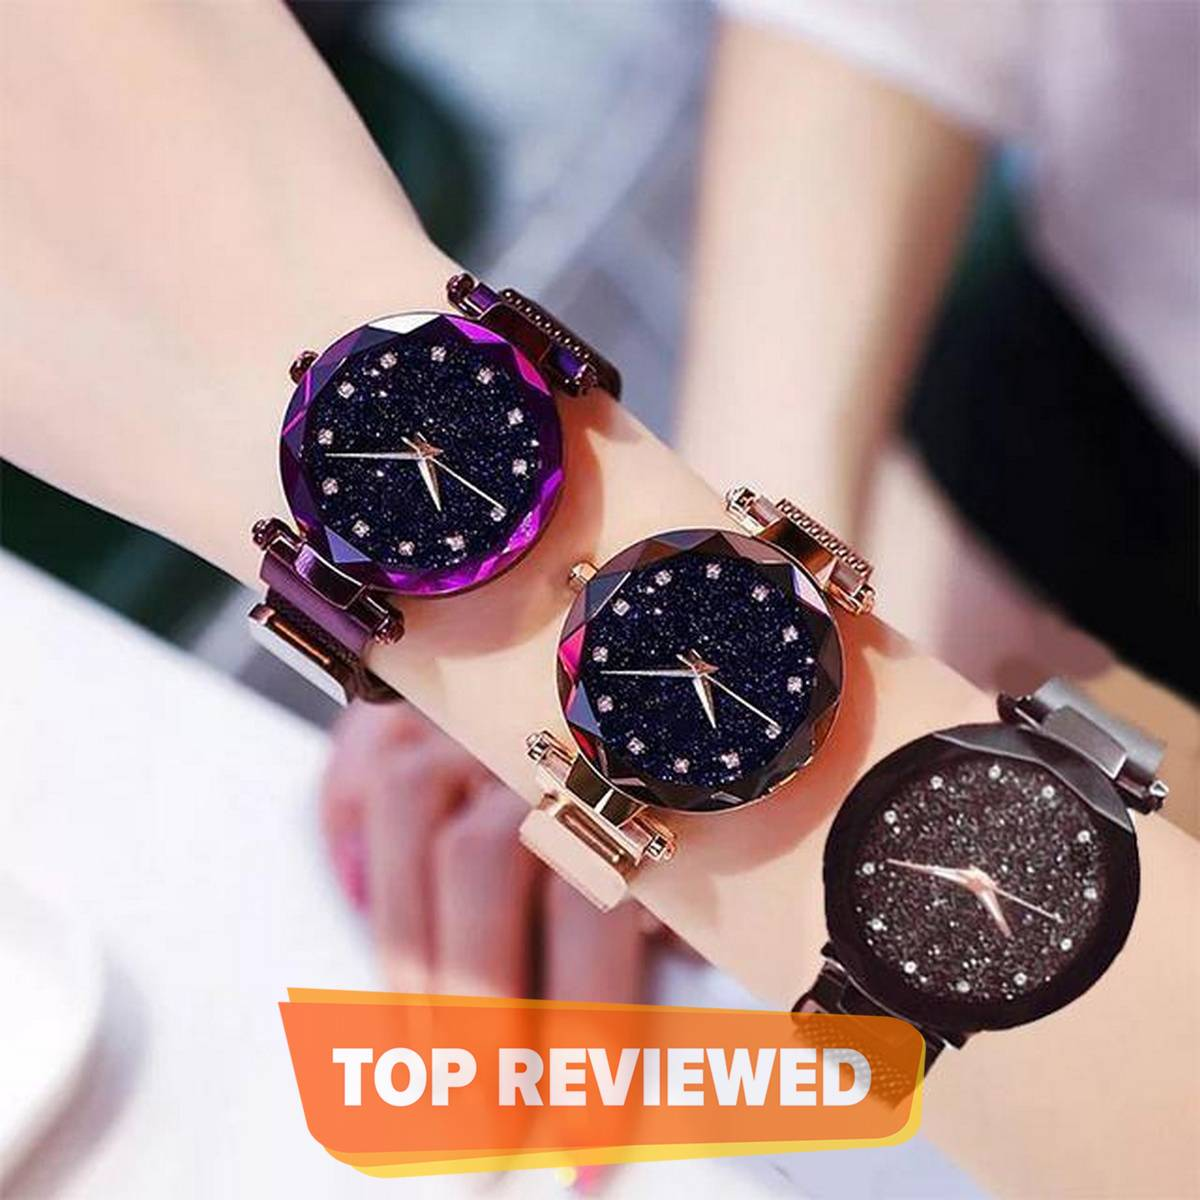 Eastern Pack of 3 Magnetic Chain Mesh Magnet Buckle Starry Sky Luxury Fashion Watch -F8000224